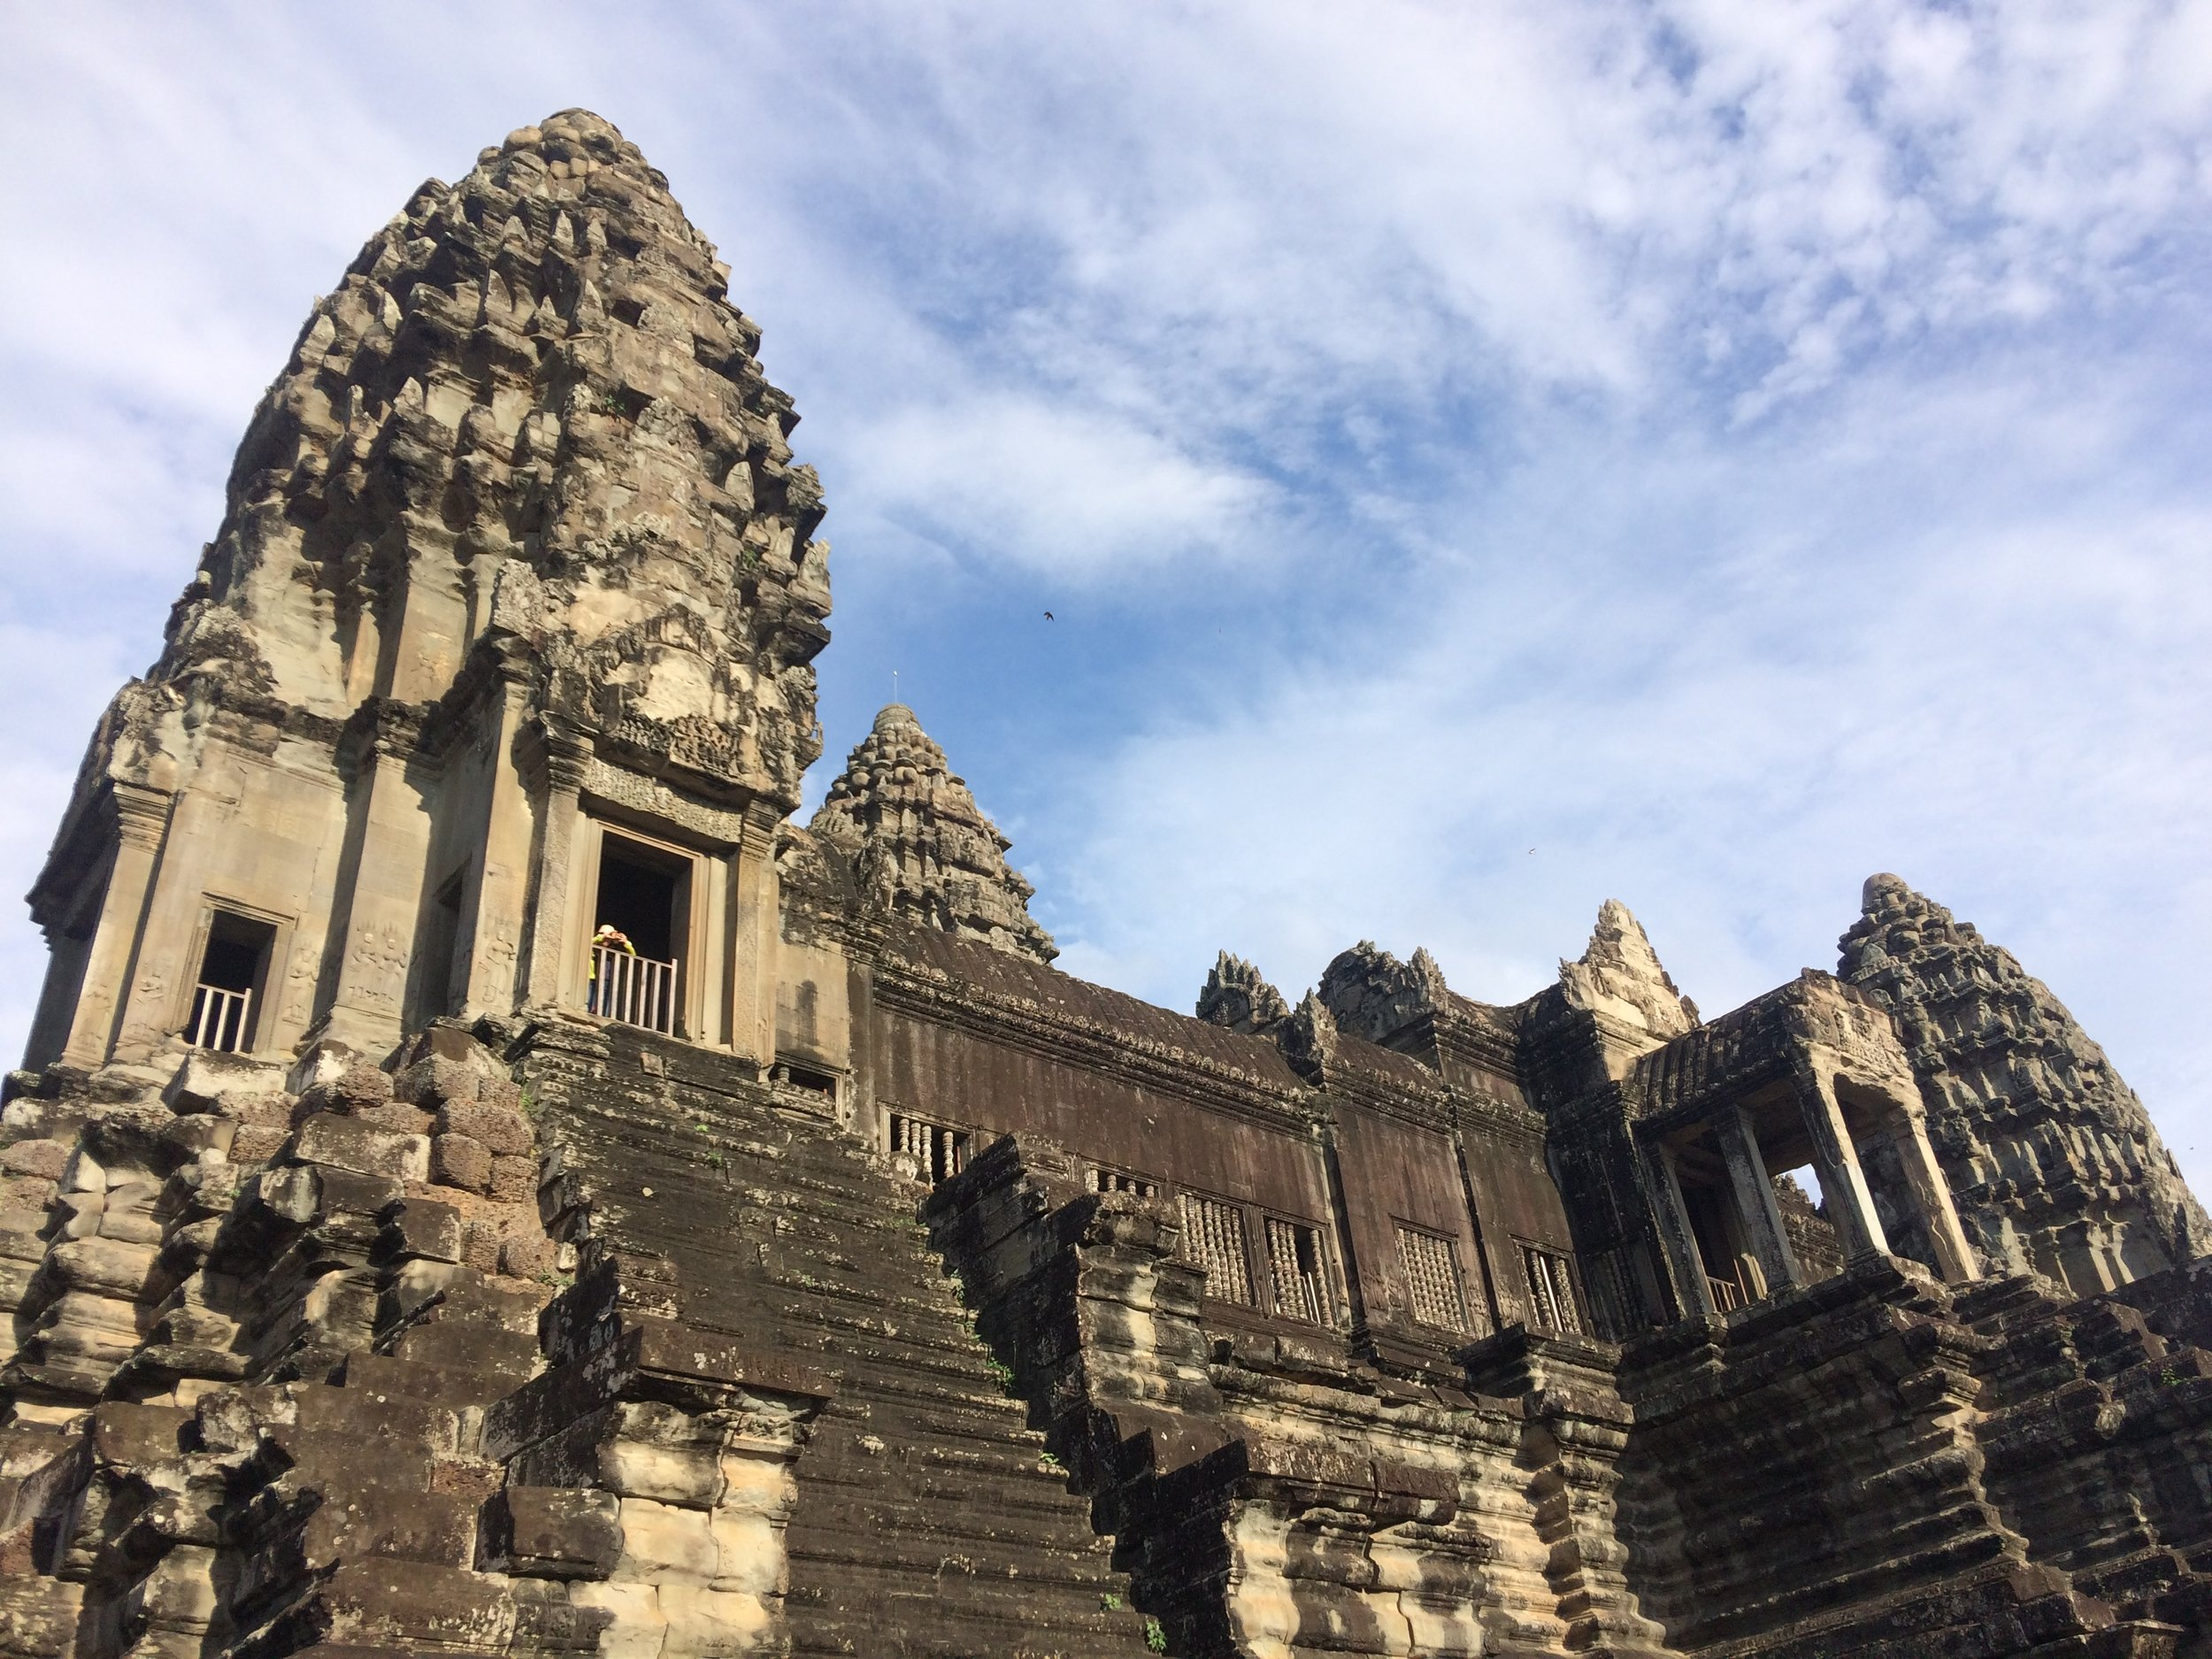 Some epic exploration between working and cycling in the temples of Angkor Watt, Cambodia